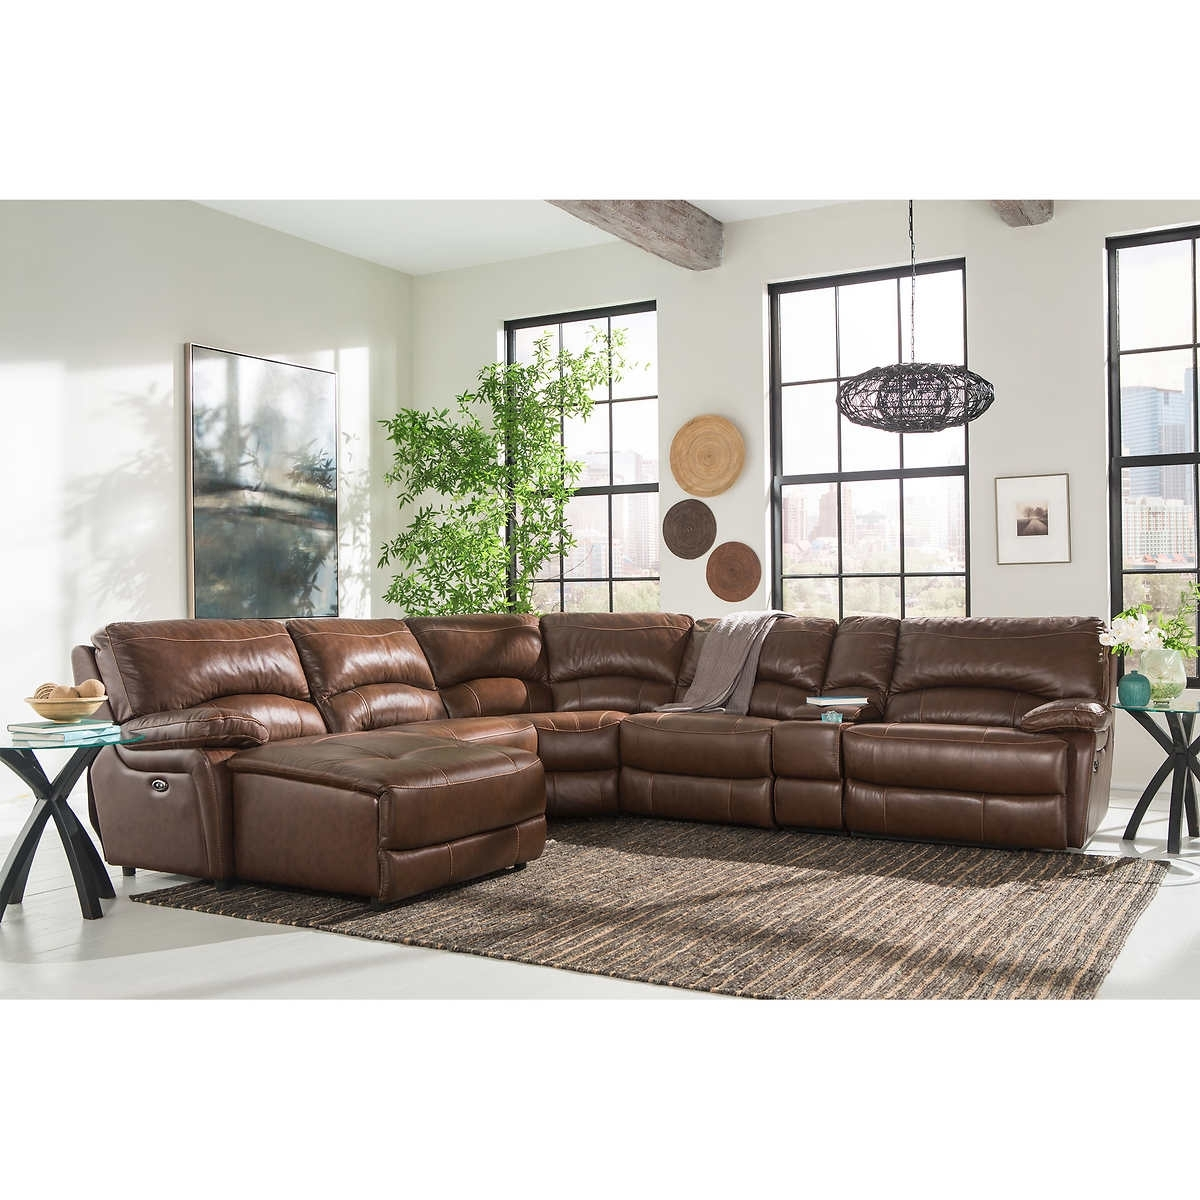 6 Piece Leather Sectional Sofas Intended For Preferred Inspirational 6 Piece Leather Sectional Sofa 56 For With 6 Piece (View 8 of 20)